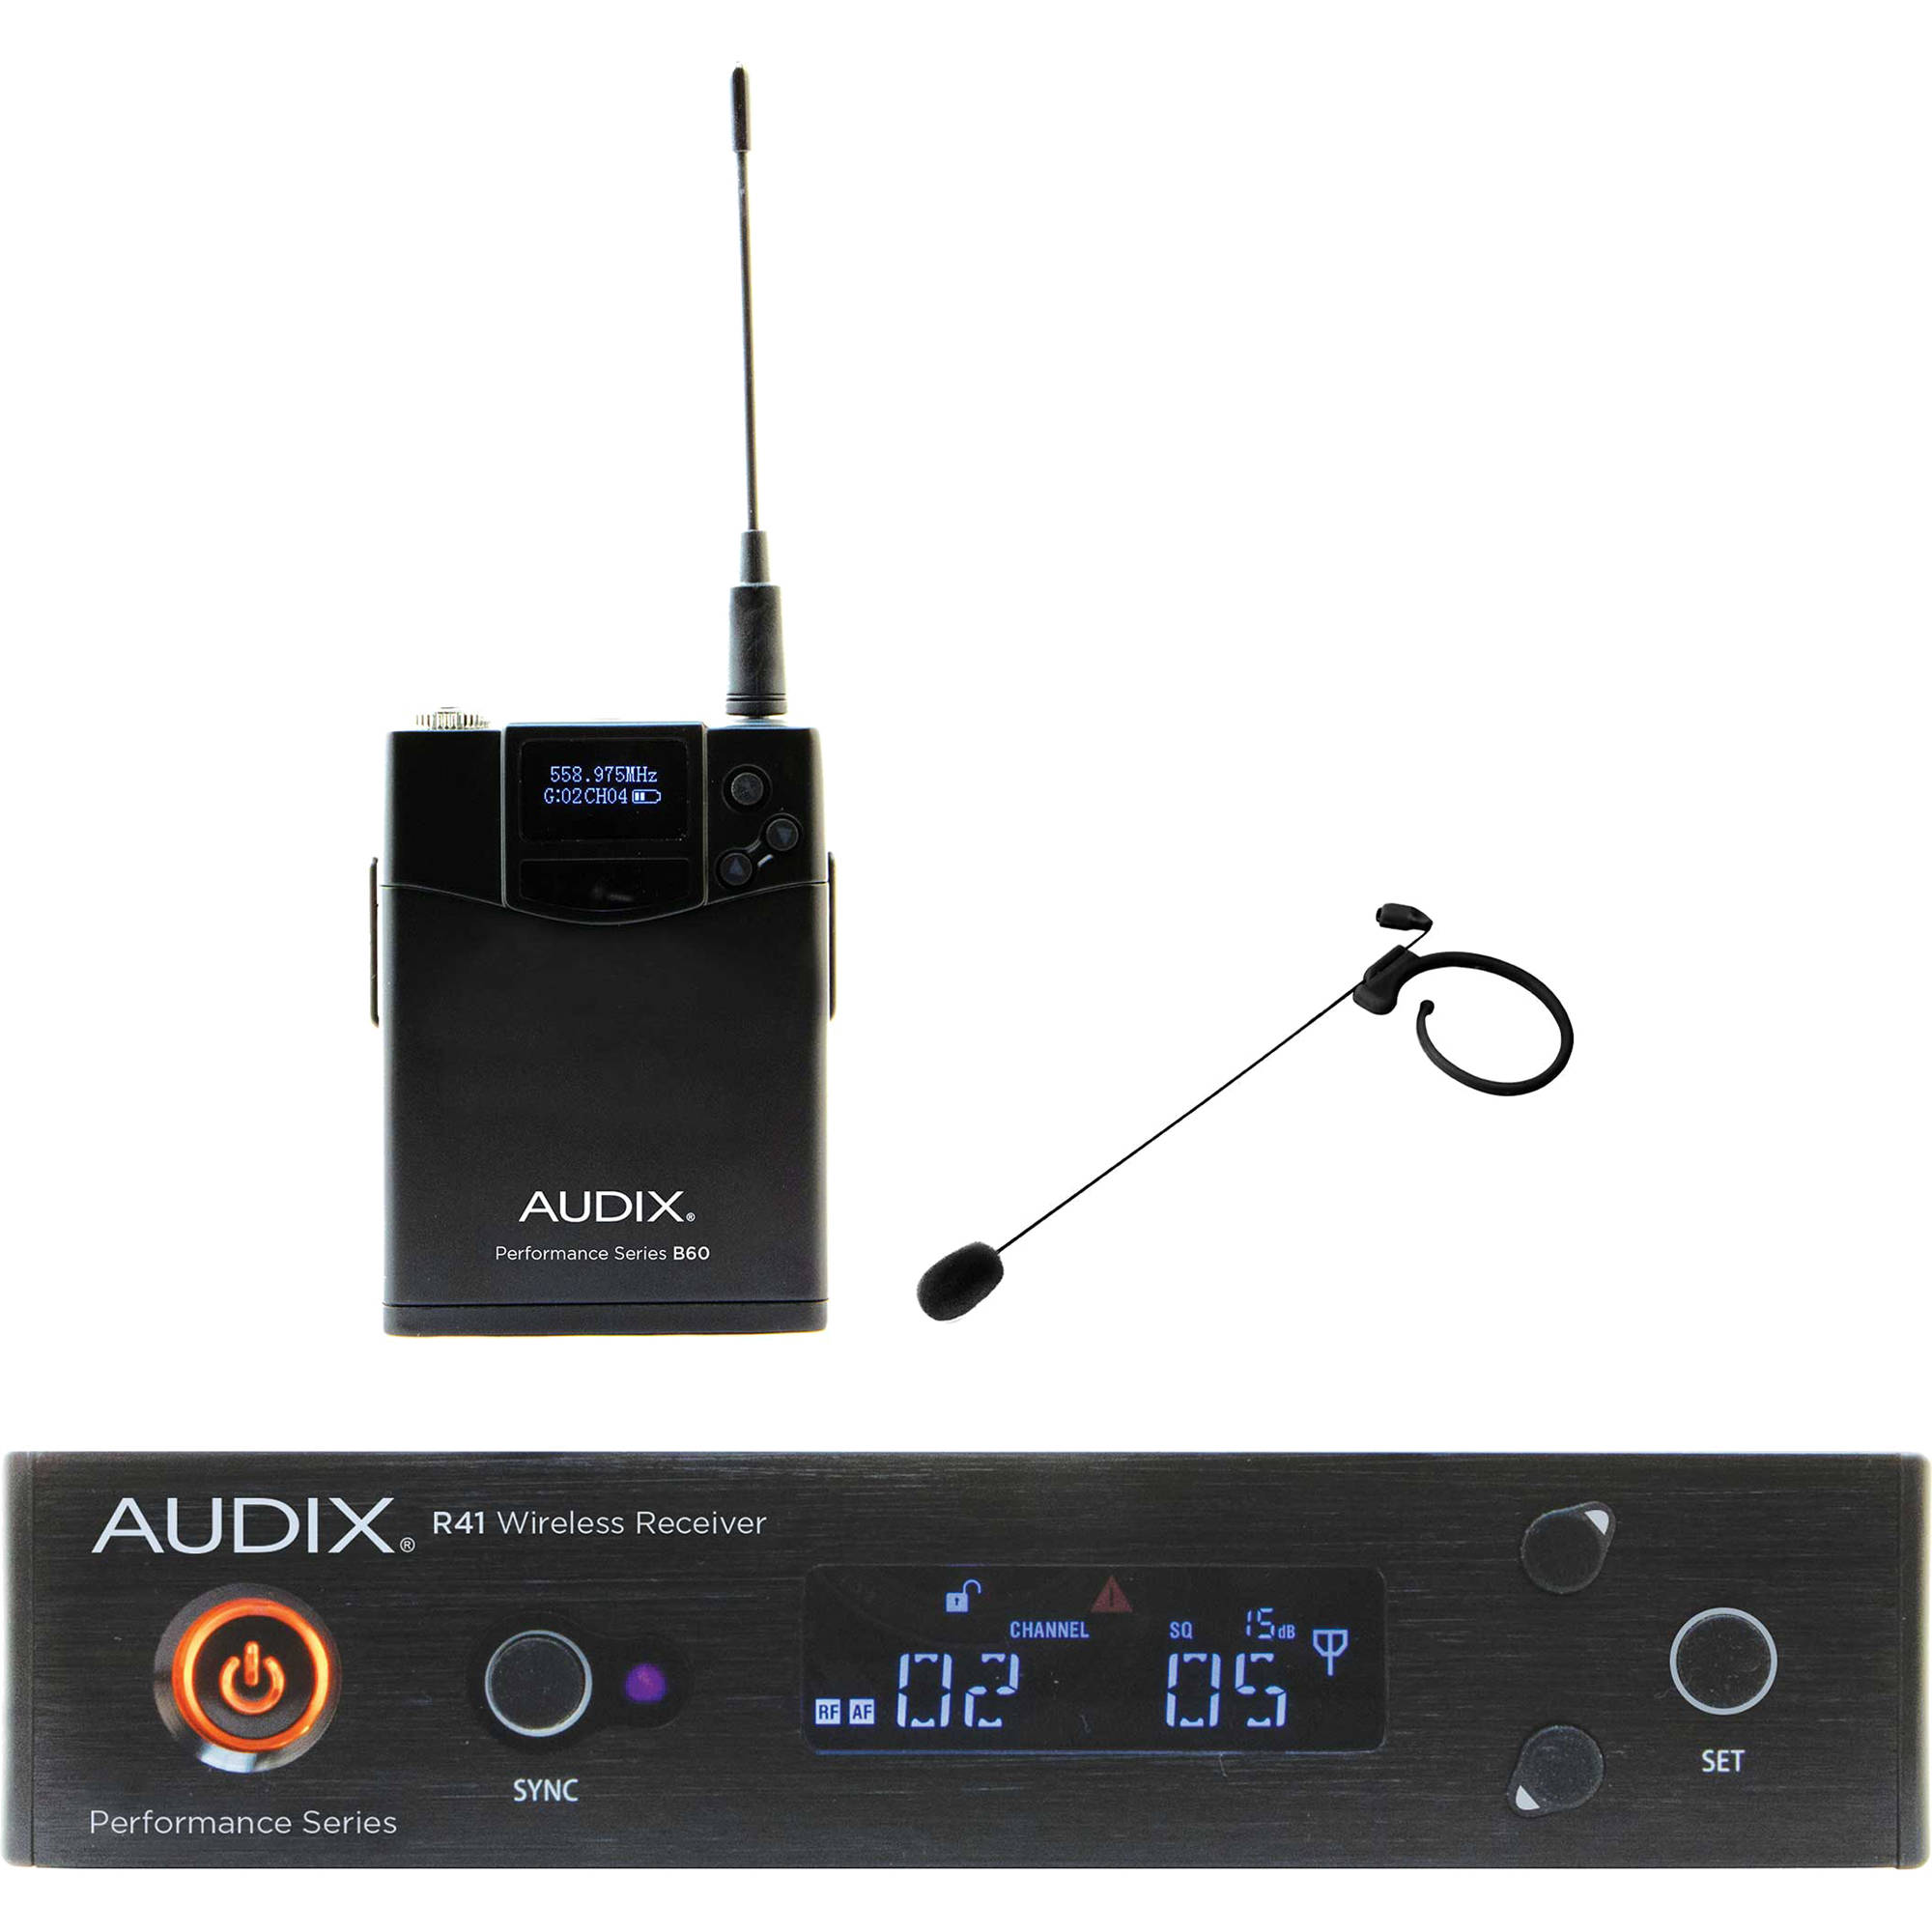 Audix AP41 Performance Series Single-Channel Bodypack Wireless System with  HT7 Single-Ear Condenser Microphone (Black, 554 to 586 MHz) 17b0448b94